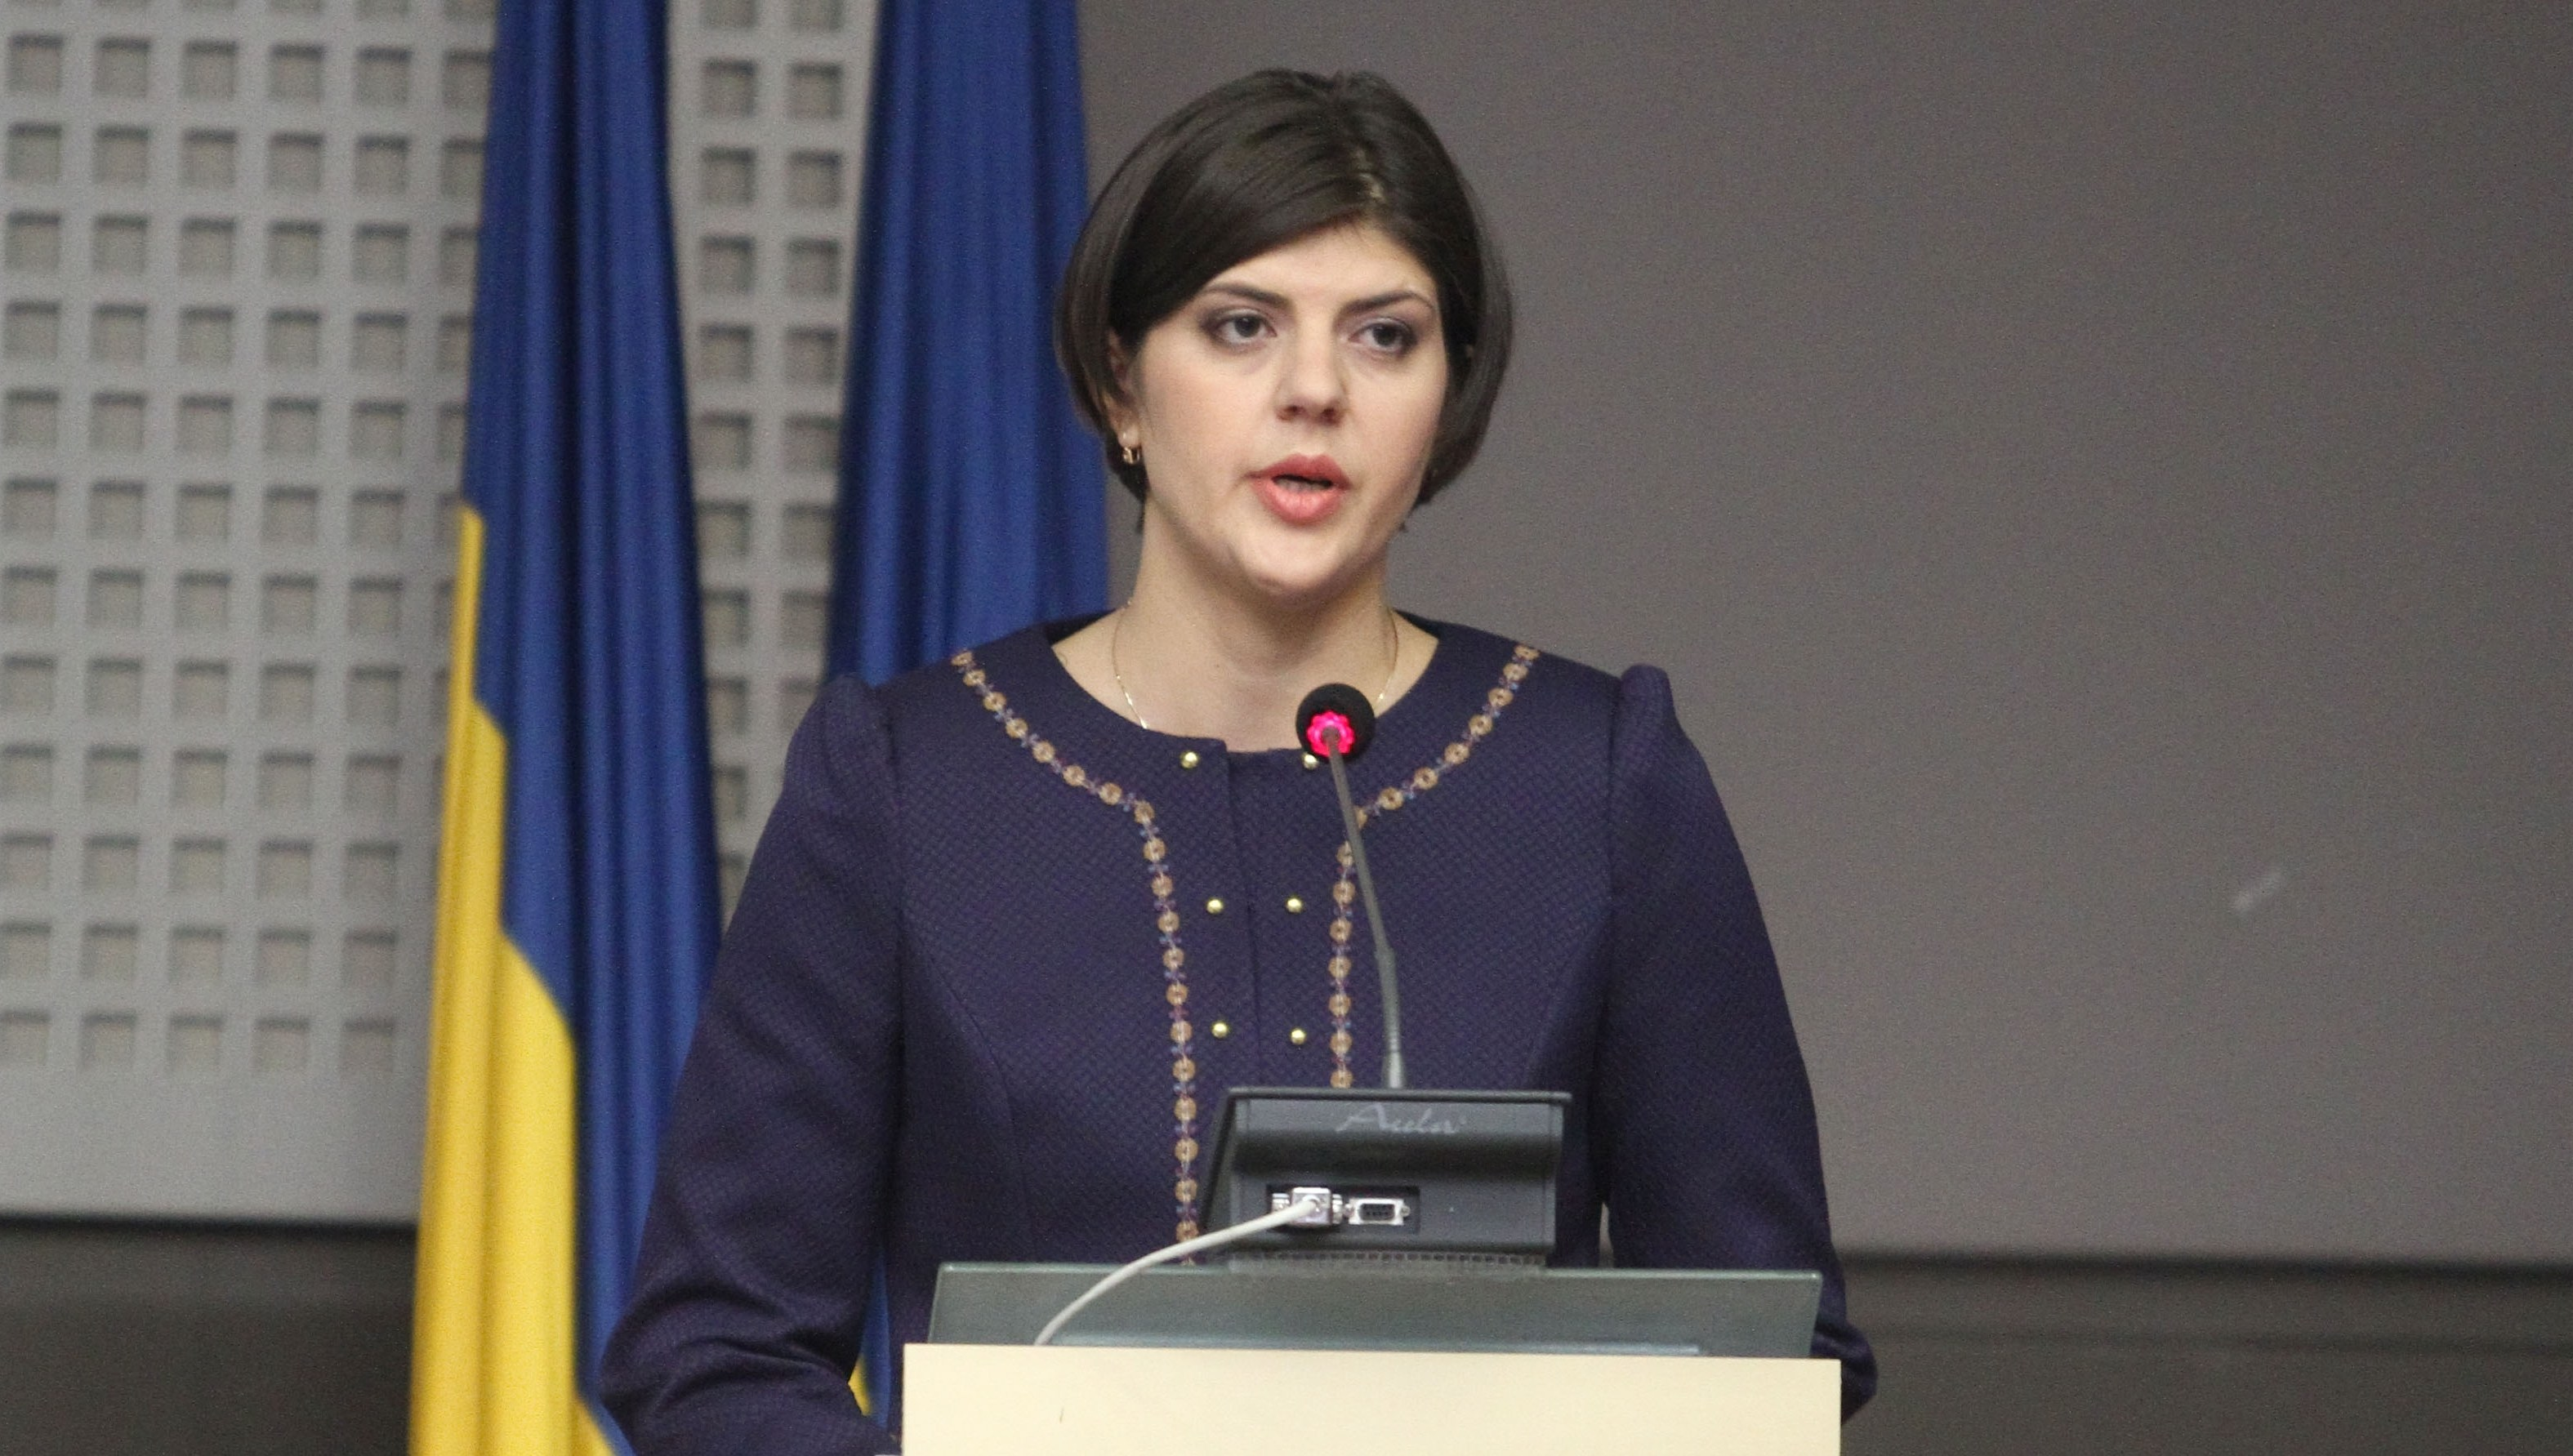 Romanian Justice minister looks to block Laura Kovesi from EU Attorney General role